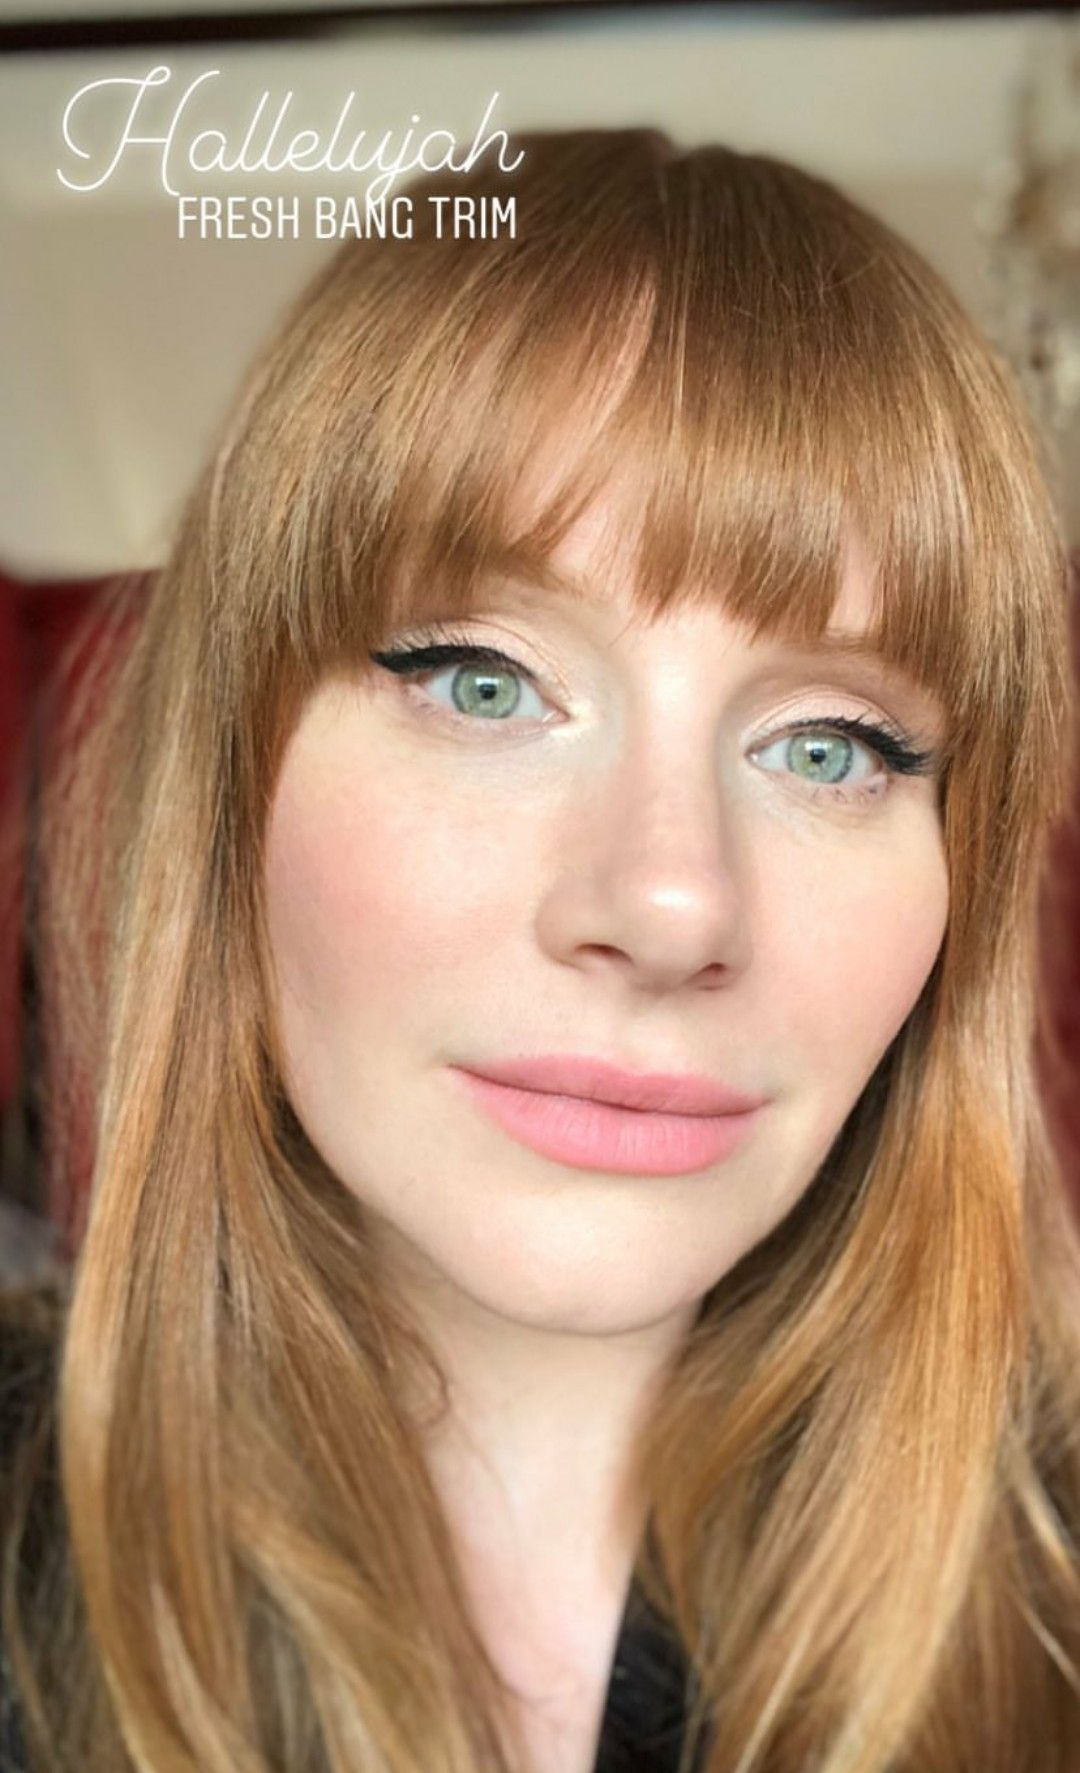 Selfie Bryce Dallas Howard nudes (65 photo), Sexy, Hot, Twitter, see through 2015